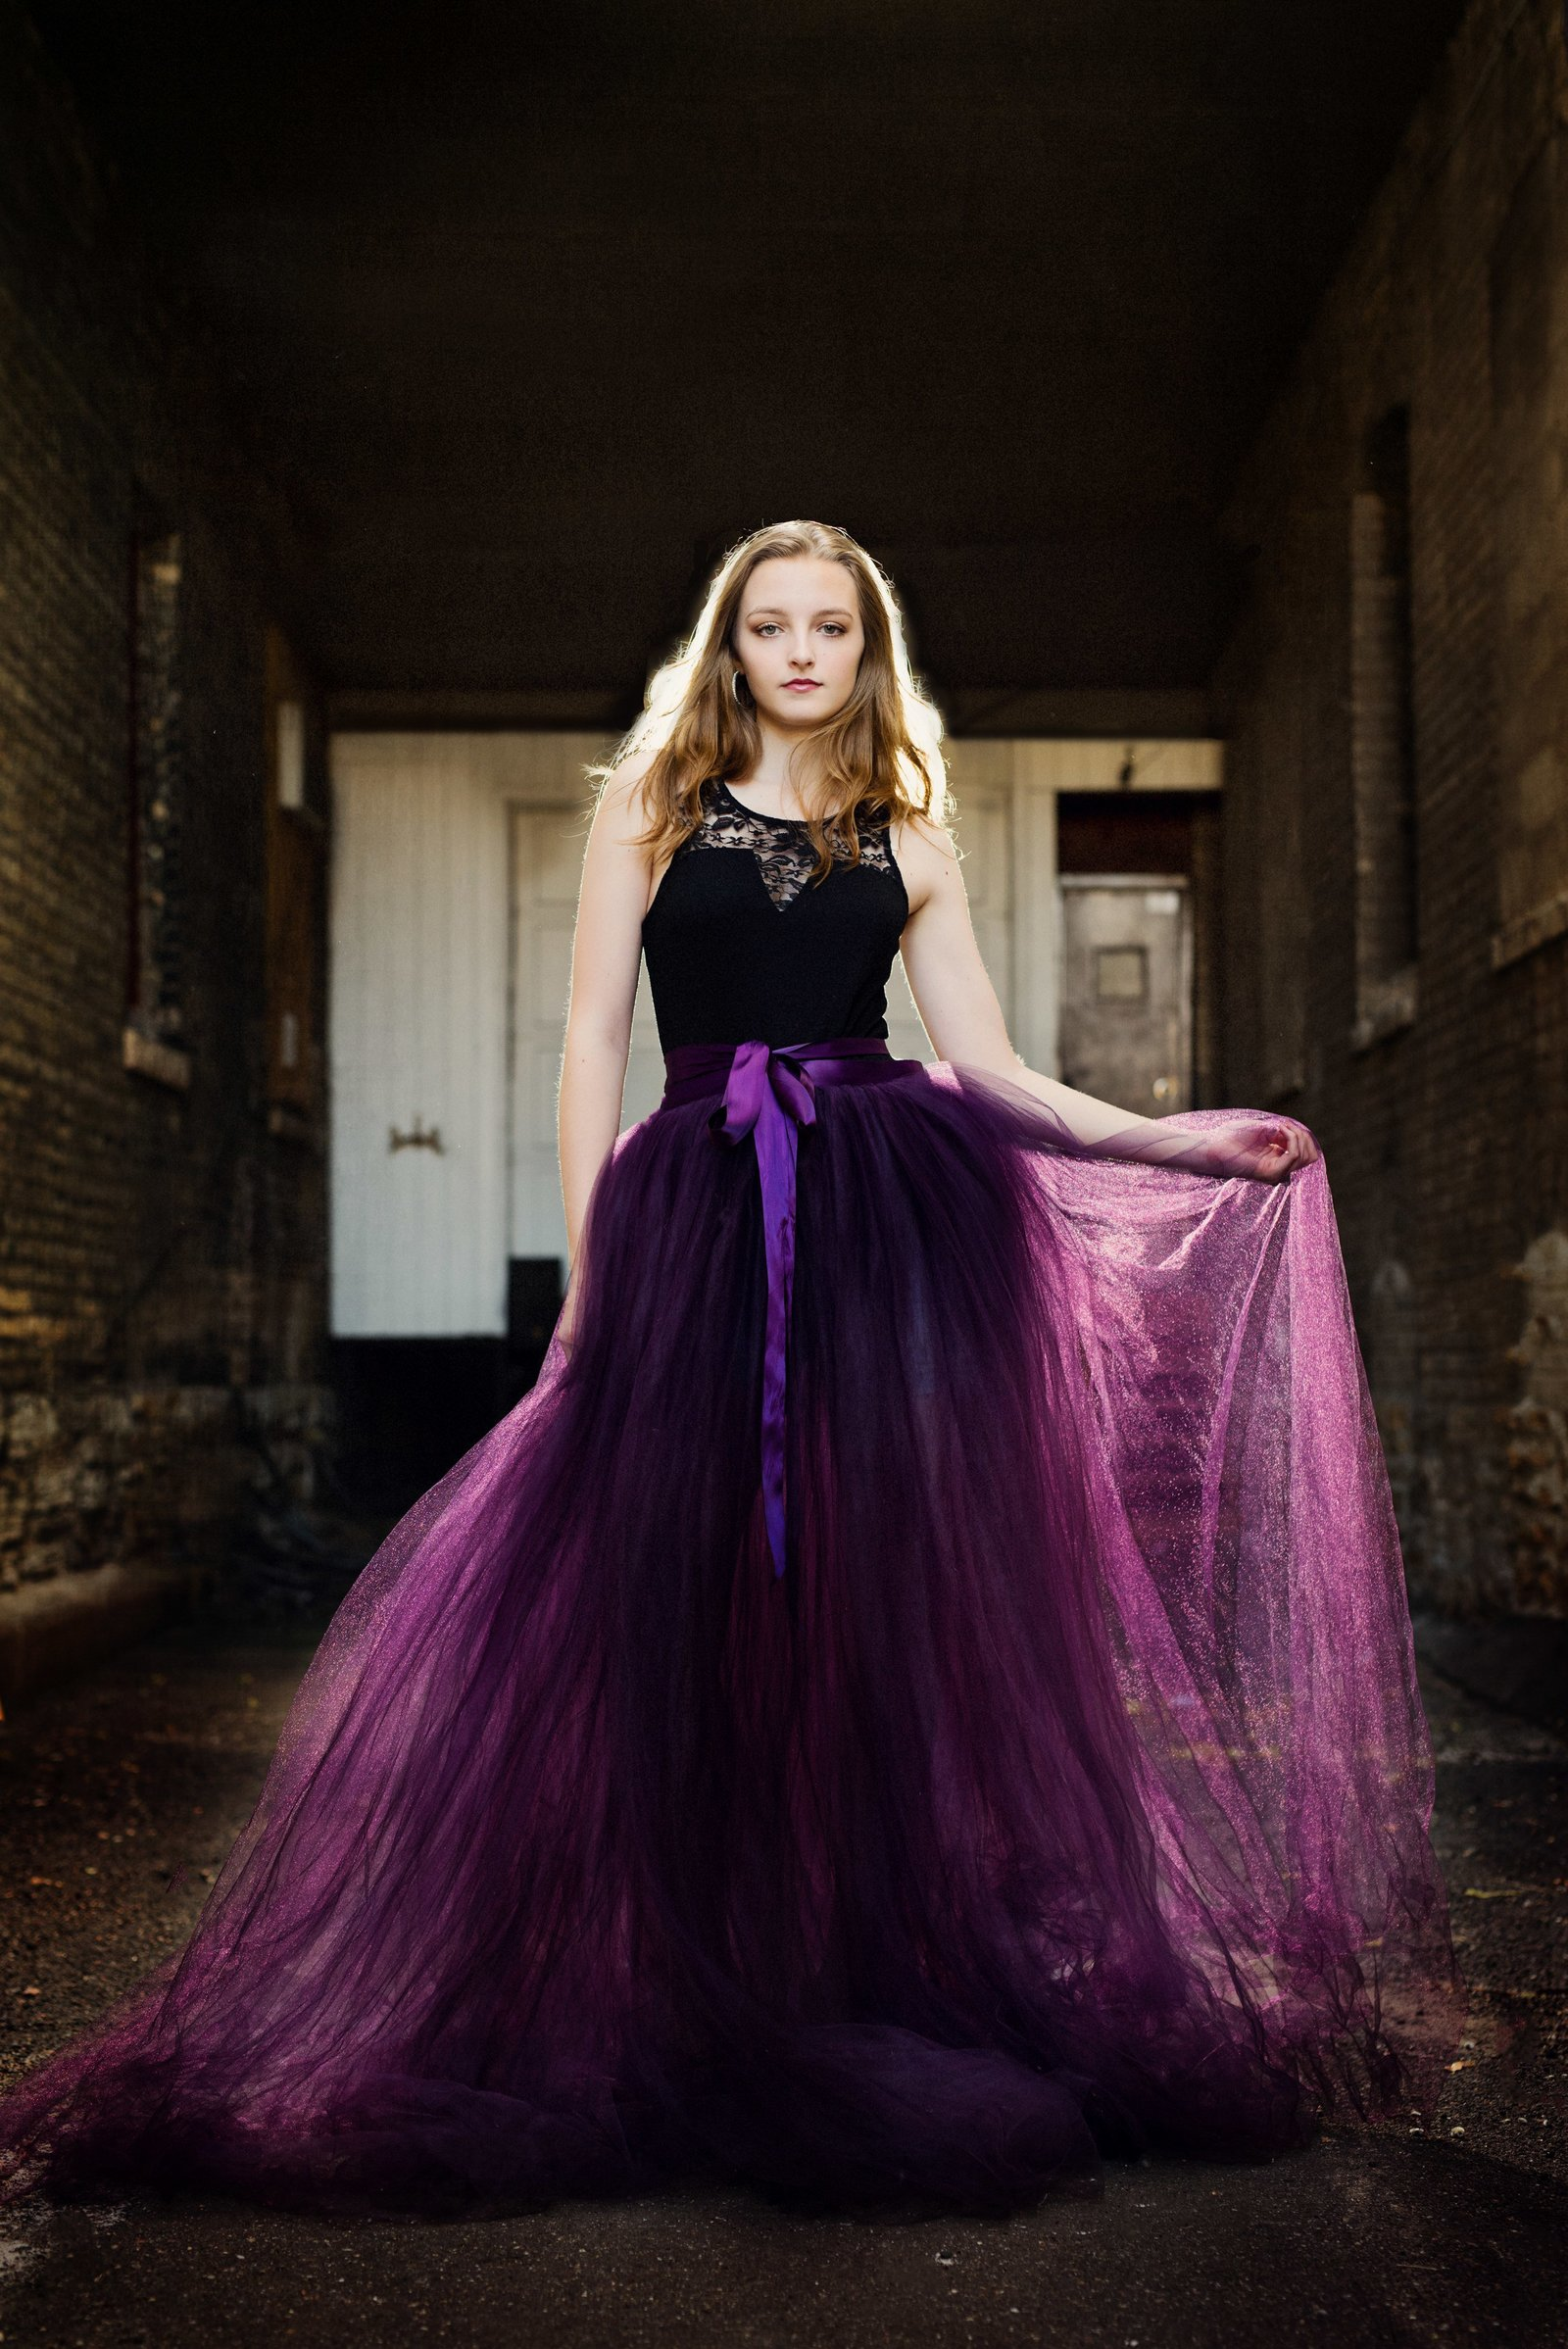 Red carpet style senior picture of girl in gorgeous purple formal dress